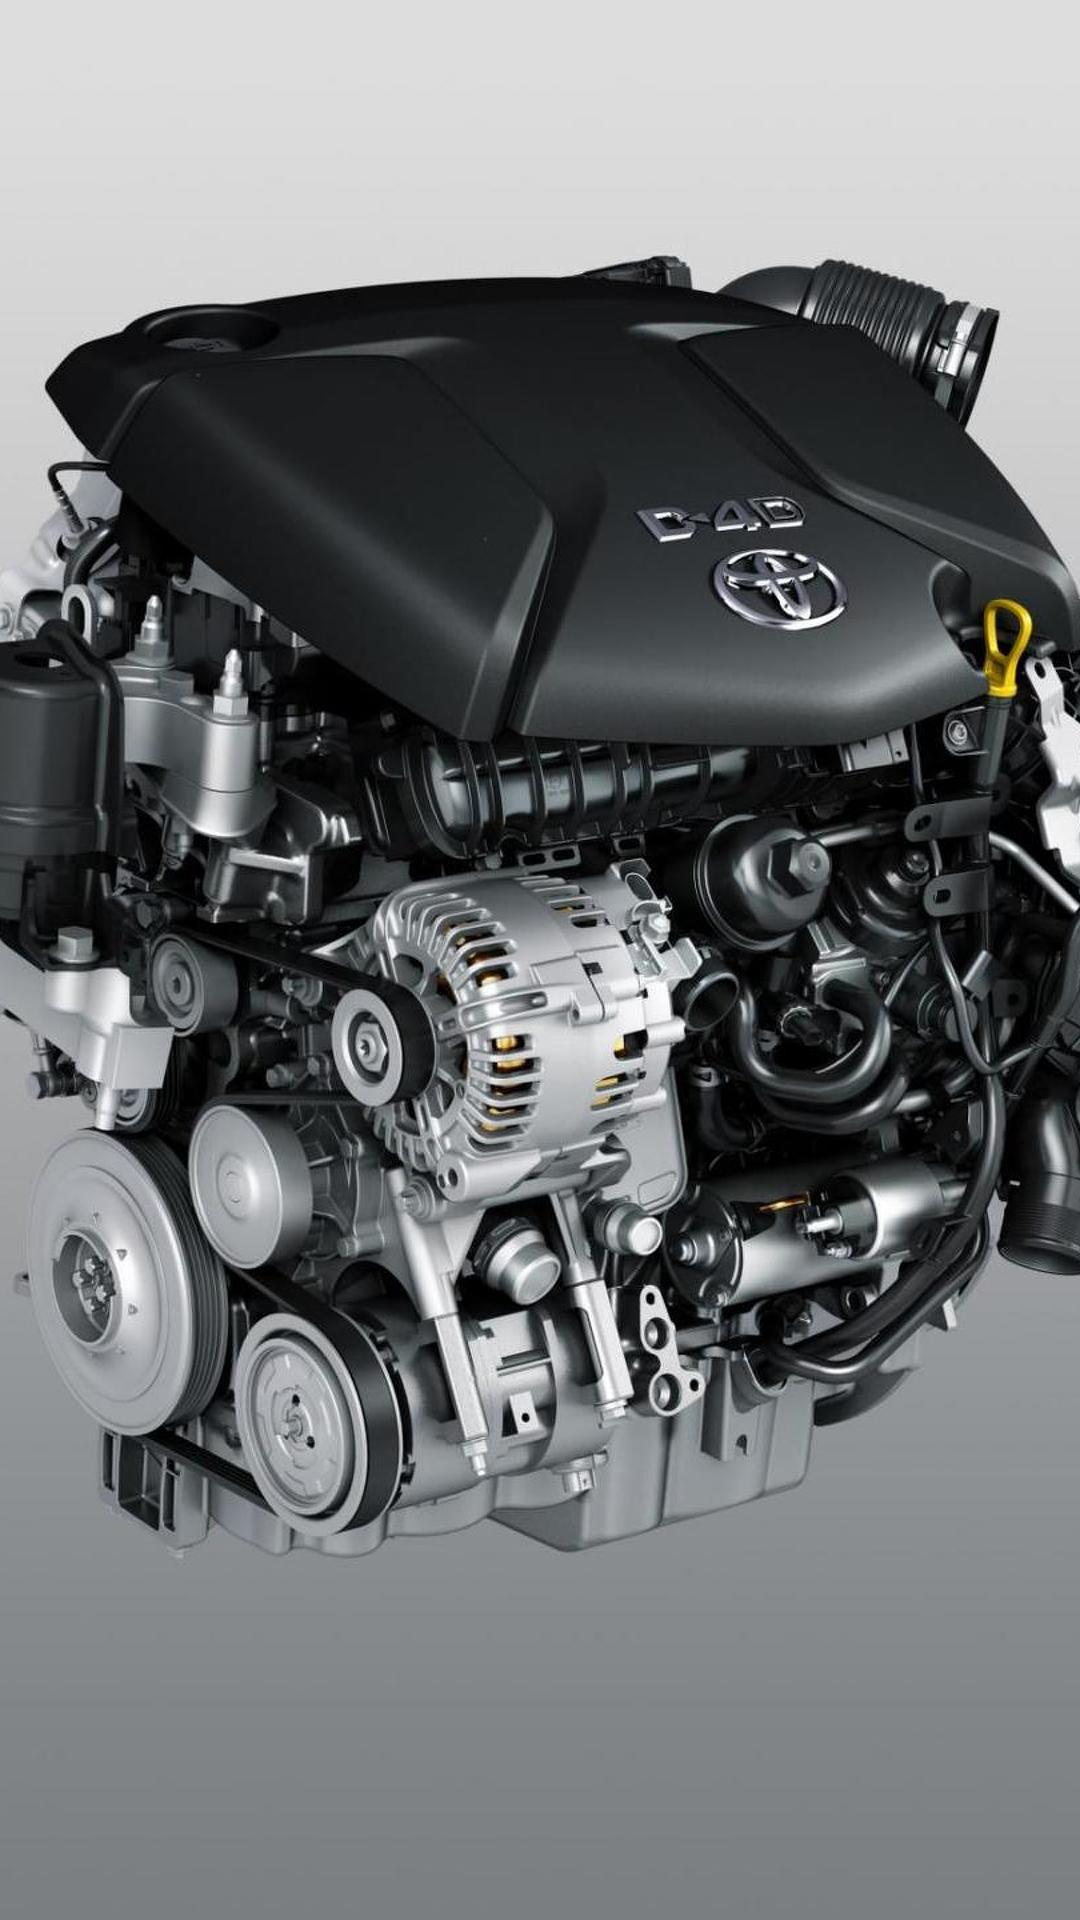 Toyota Verso 1 6 D-4D powered by BMW engine